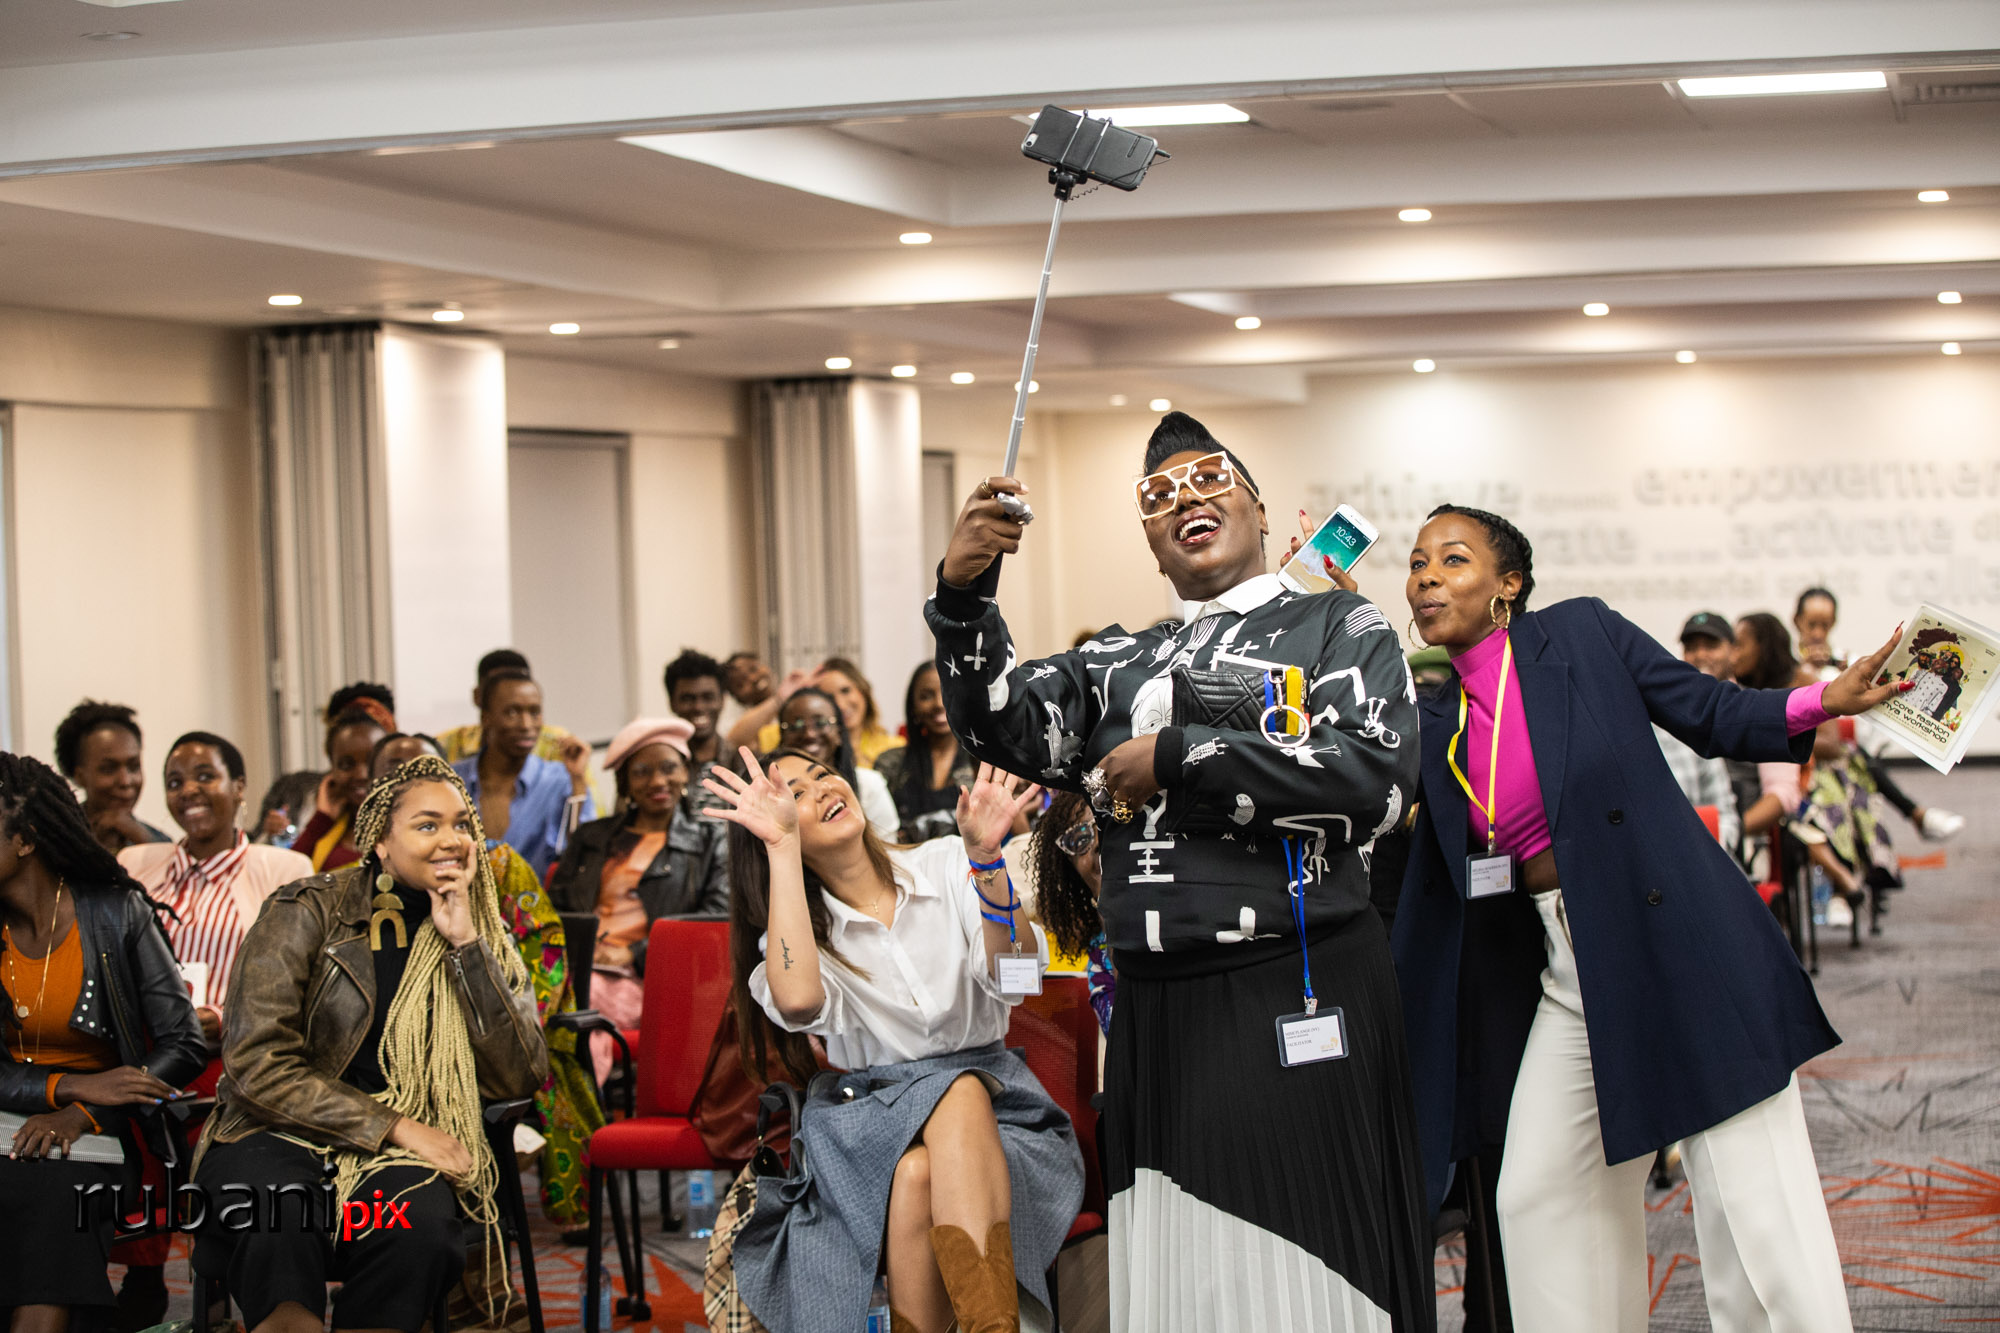 Educate - Designer Mimi Plange talks about the beginnings of her career as a creative director for Rocawear to Melissa Henderson. One takeaway, take risks and negotiate your worth as a employee.